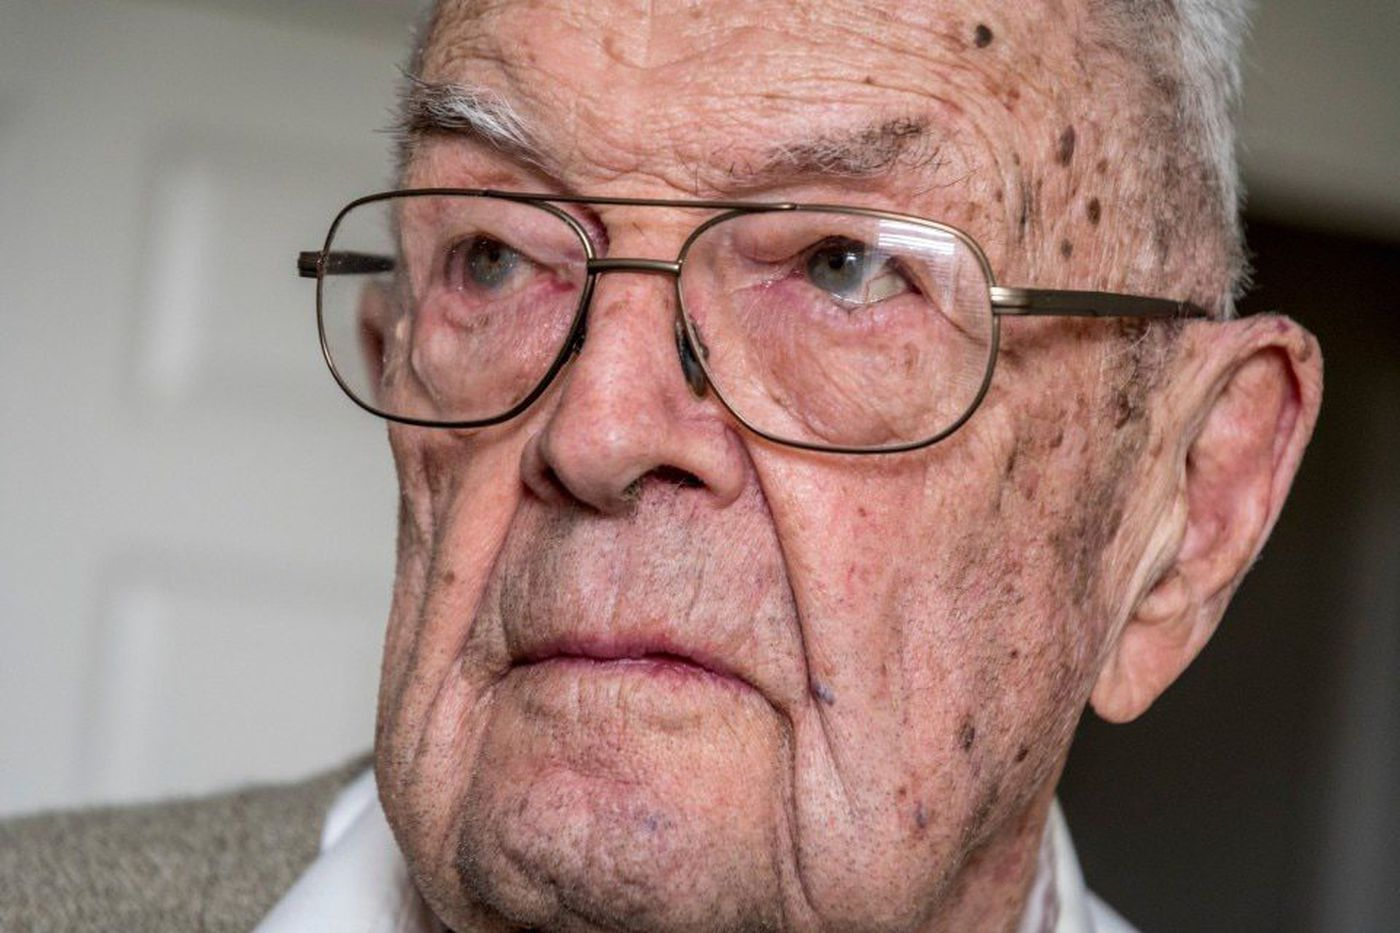 At 103, Kermit Dyke is the oldest living graduate of West Point